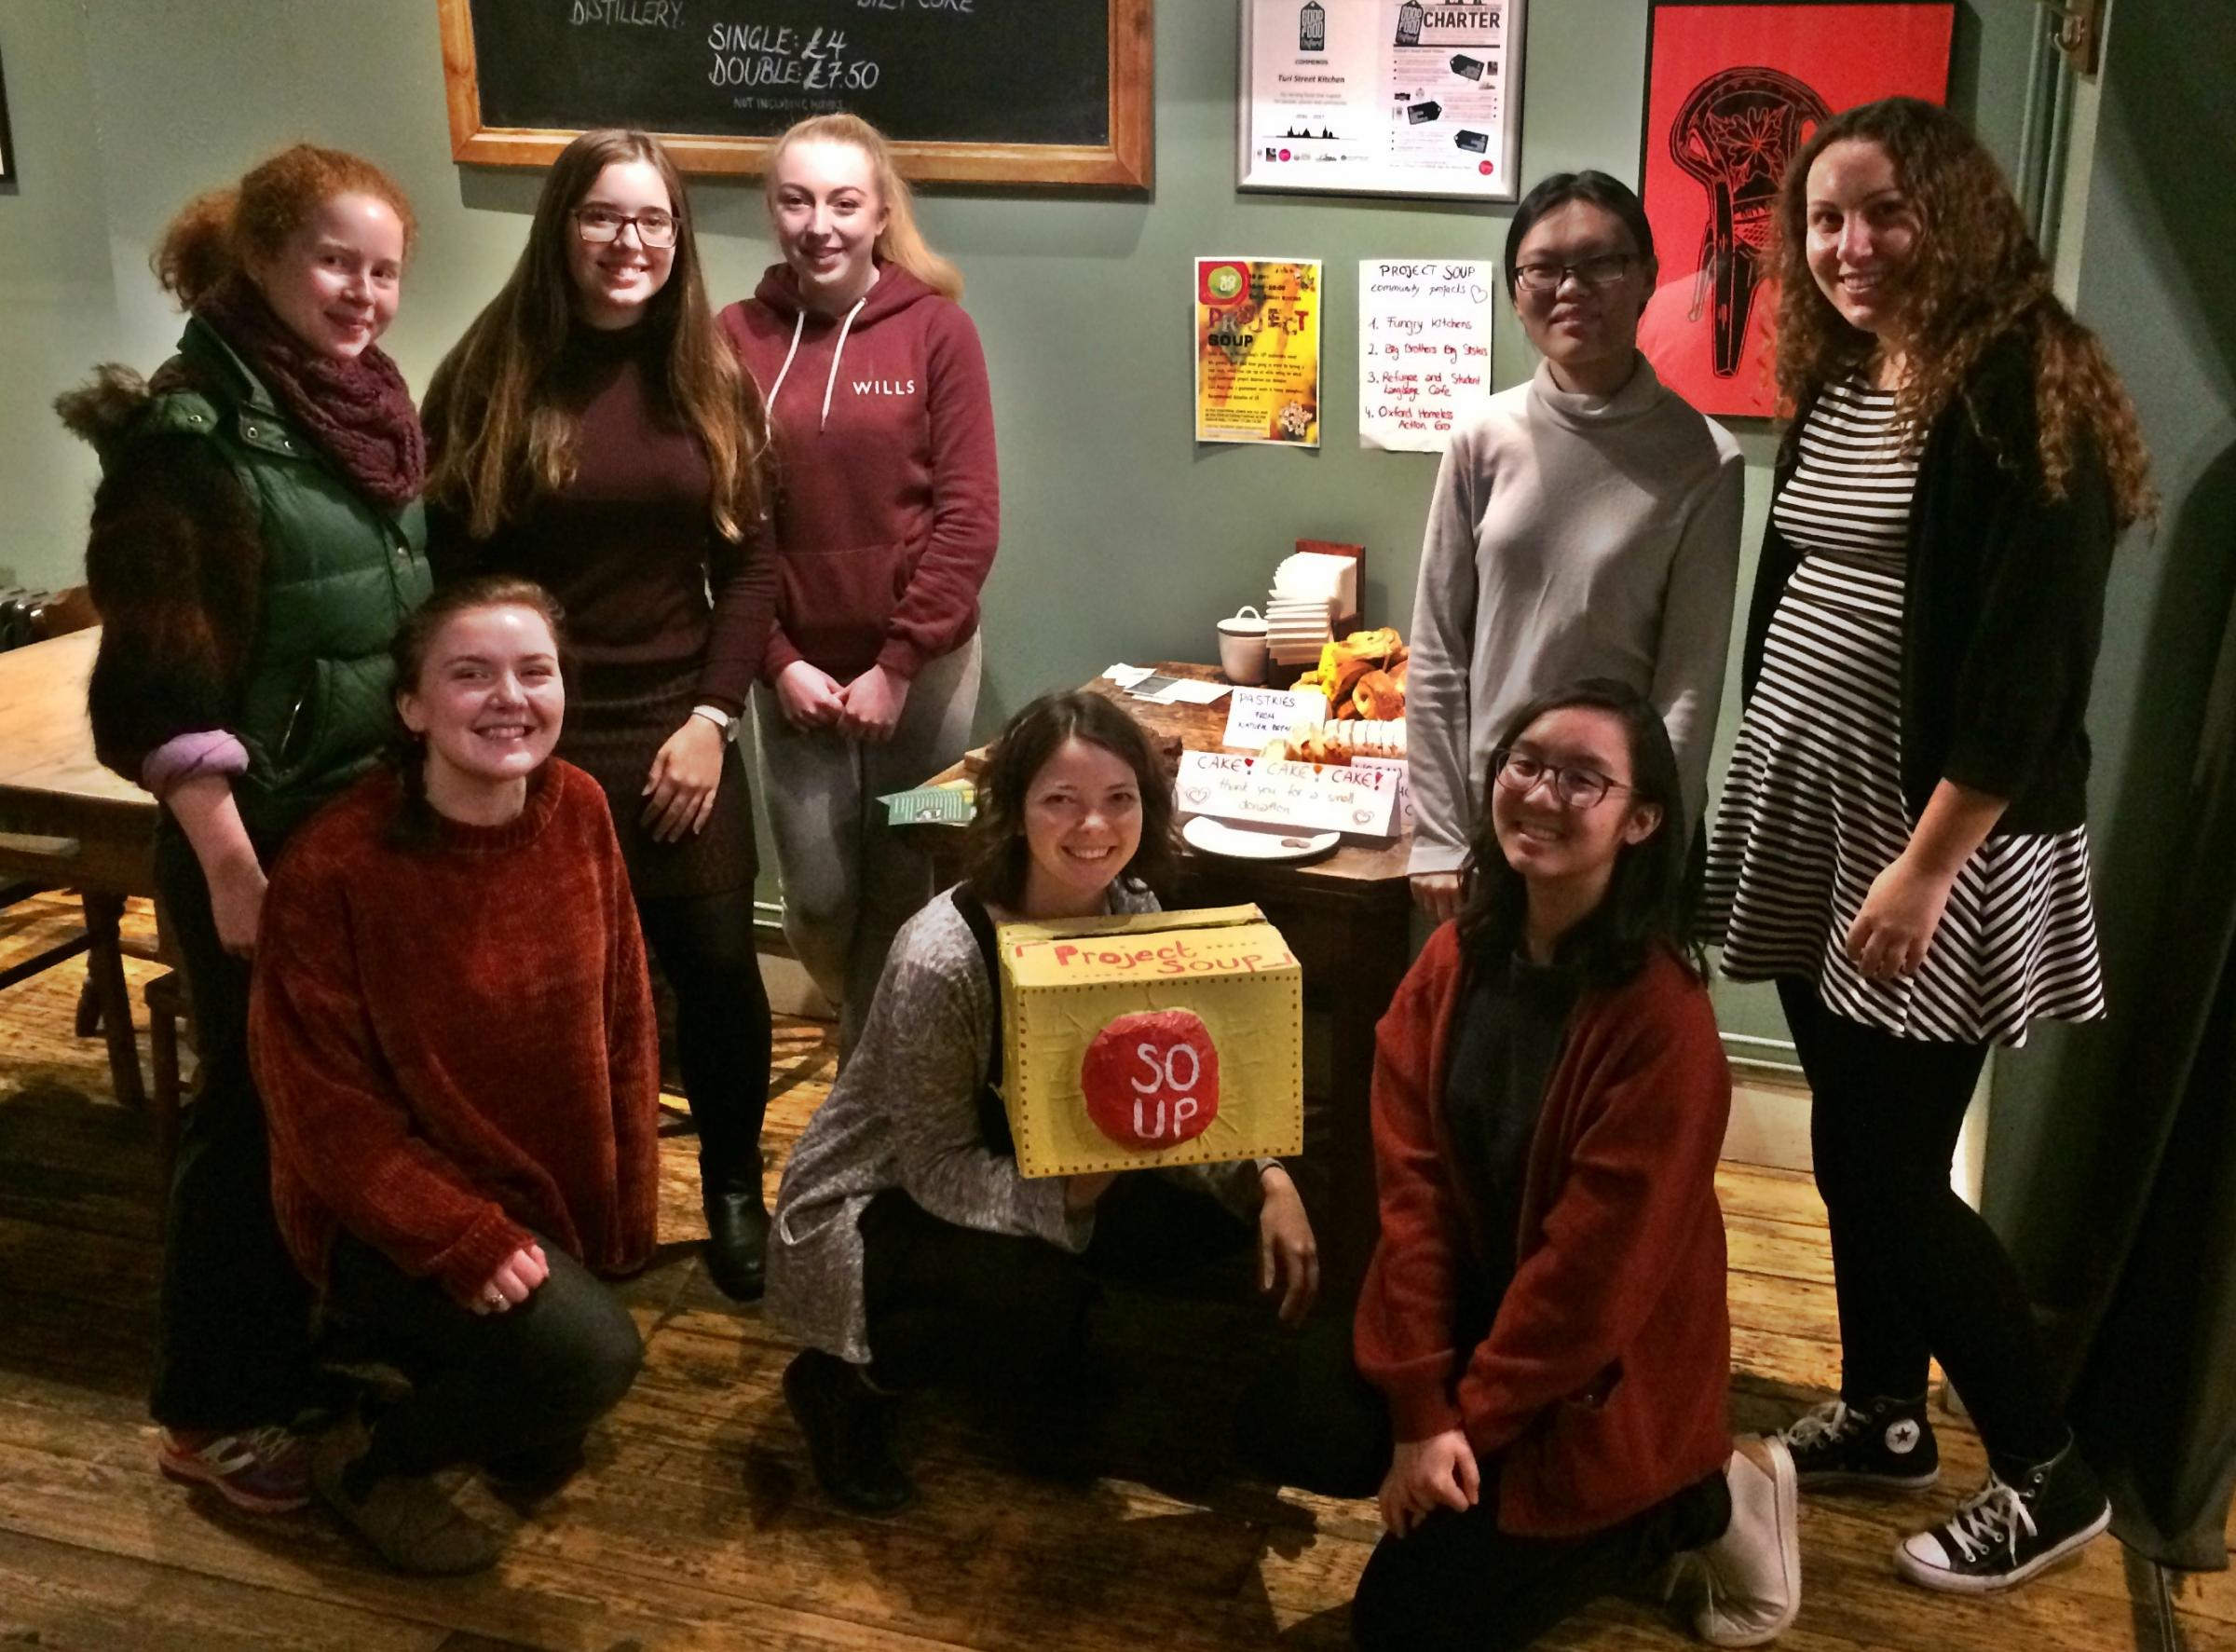 The Project Soup team fundraising and feasting at the Turl Street Kitchen, November 19, 2017.